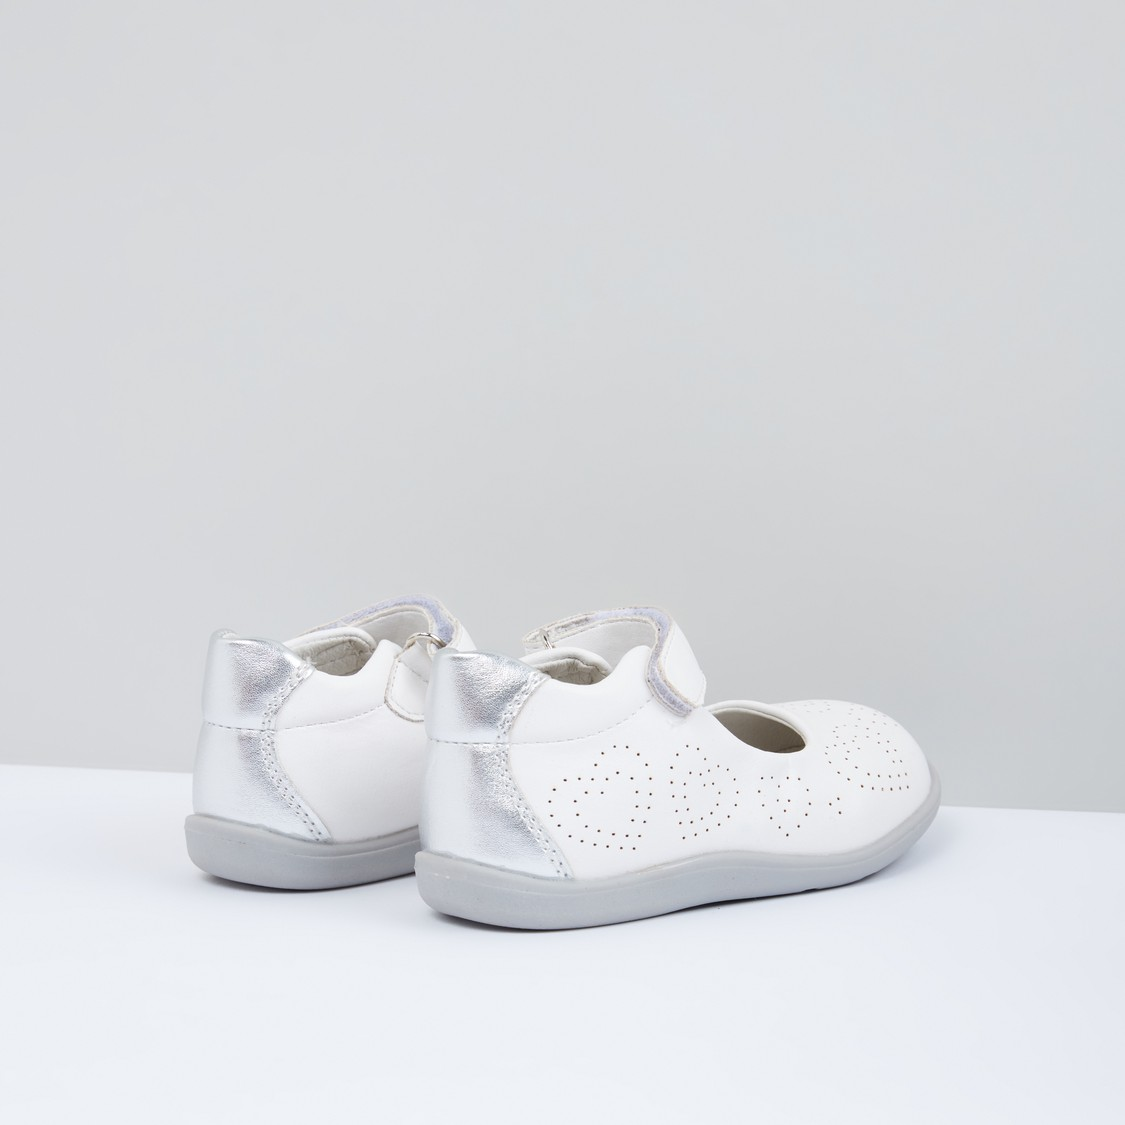 Ballerina Shoes with Hook and Loop Closure